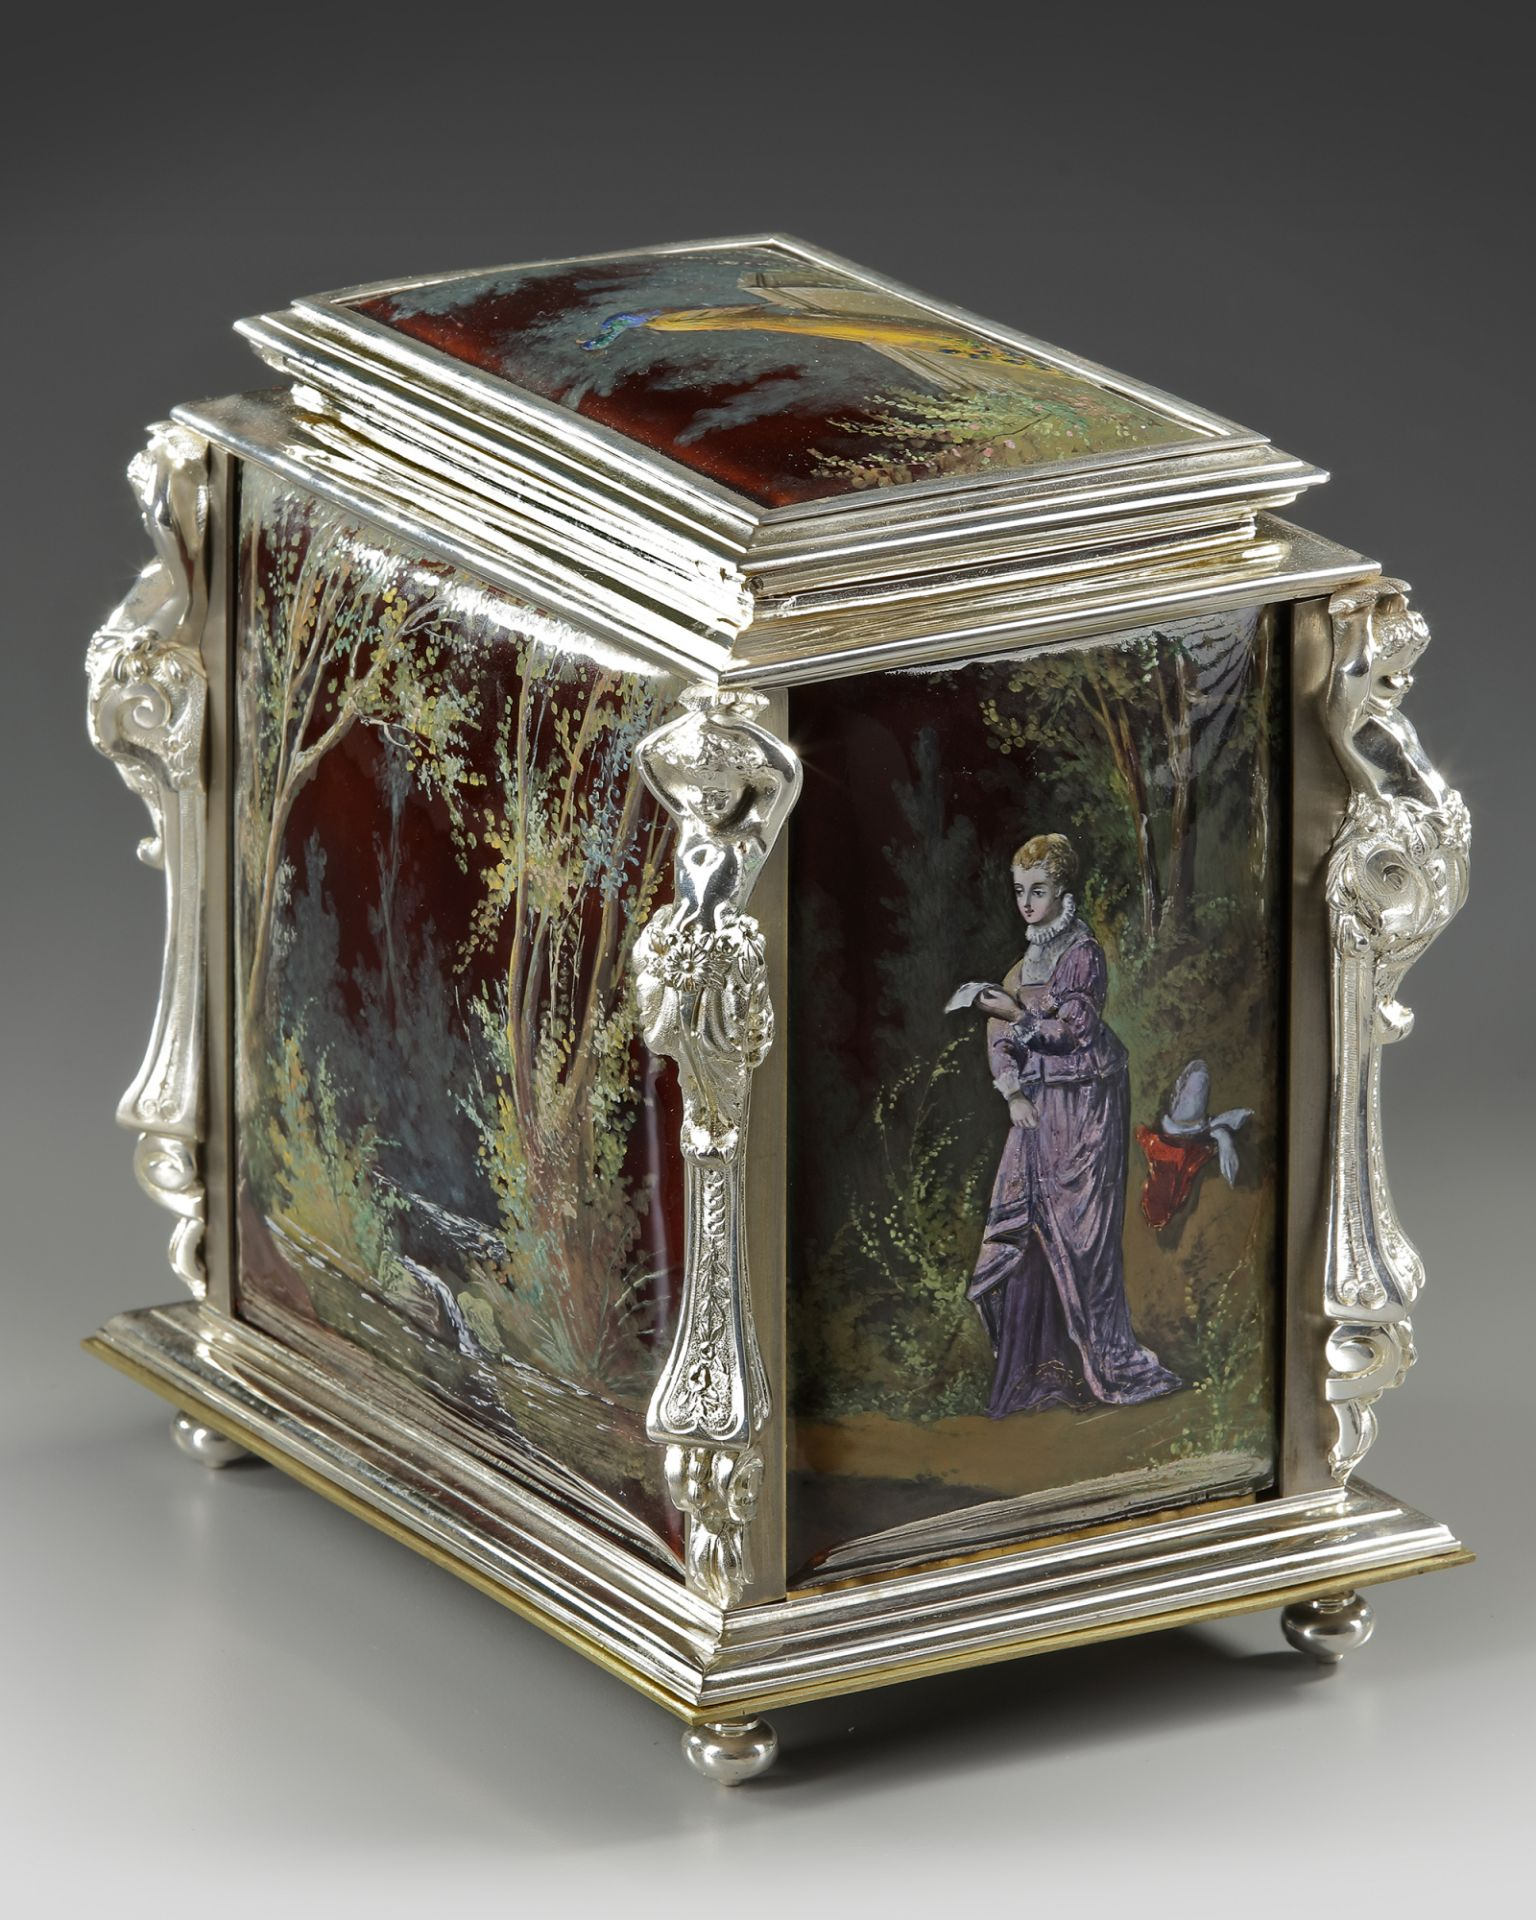 A JEWELRY BOX, FRANCE, LATE 19TH CENTURY - Image 2 of 5